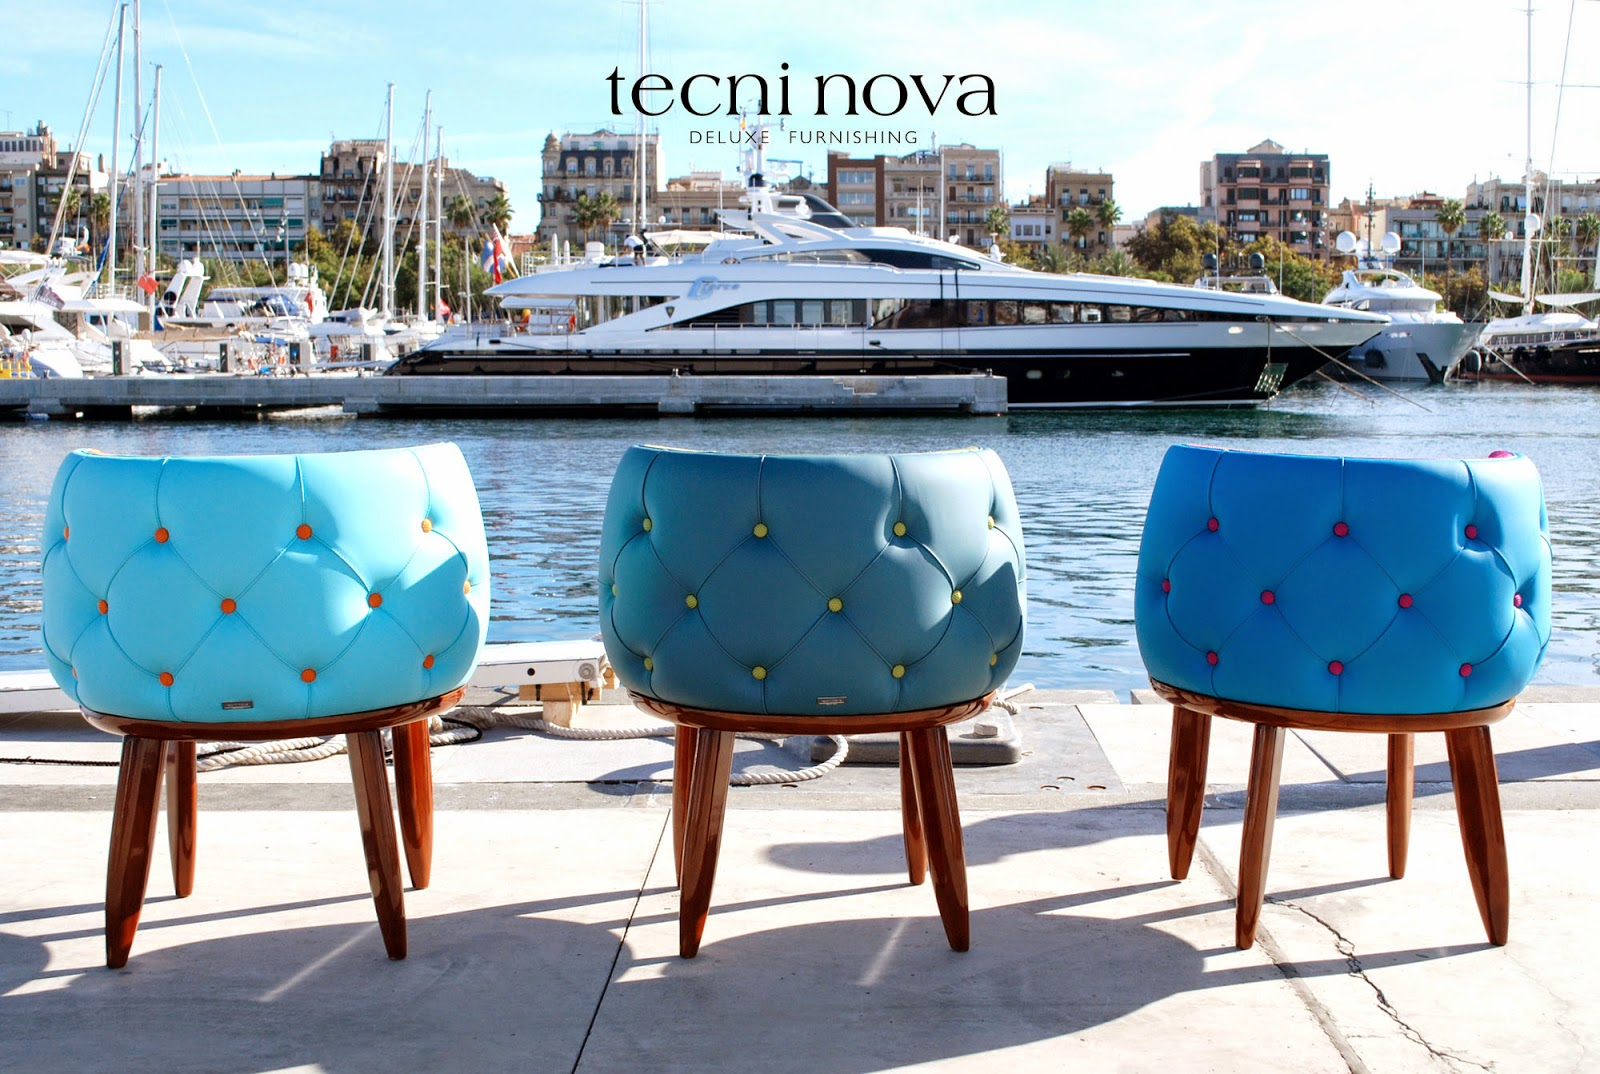 tecninova-outdoor-deluxe-luxury-furnishing-chester-capitone-sail-saling-mobiliario-exterior-nautico-telas-exteriores-fabrics-water-resistant-nautical-luxury-yatch-salon-nautico-barcelona-2014-thecooluxury-luxury-lifestyle-millionaire-houses-pool-upholstery-armchair-chair-table-pedestal-swivel-bright-colours-seafloor-sea-ocean-colours-turquoise